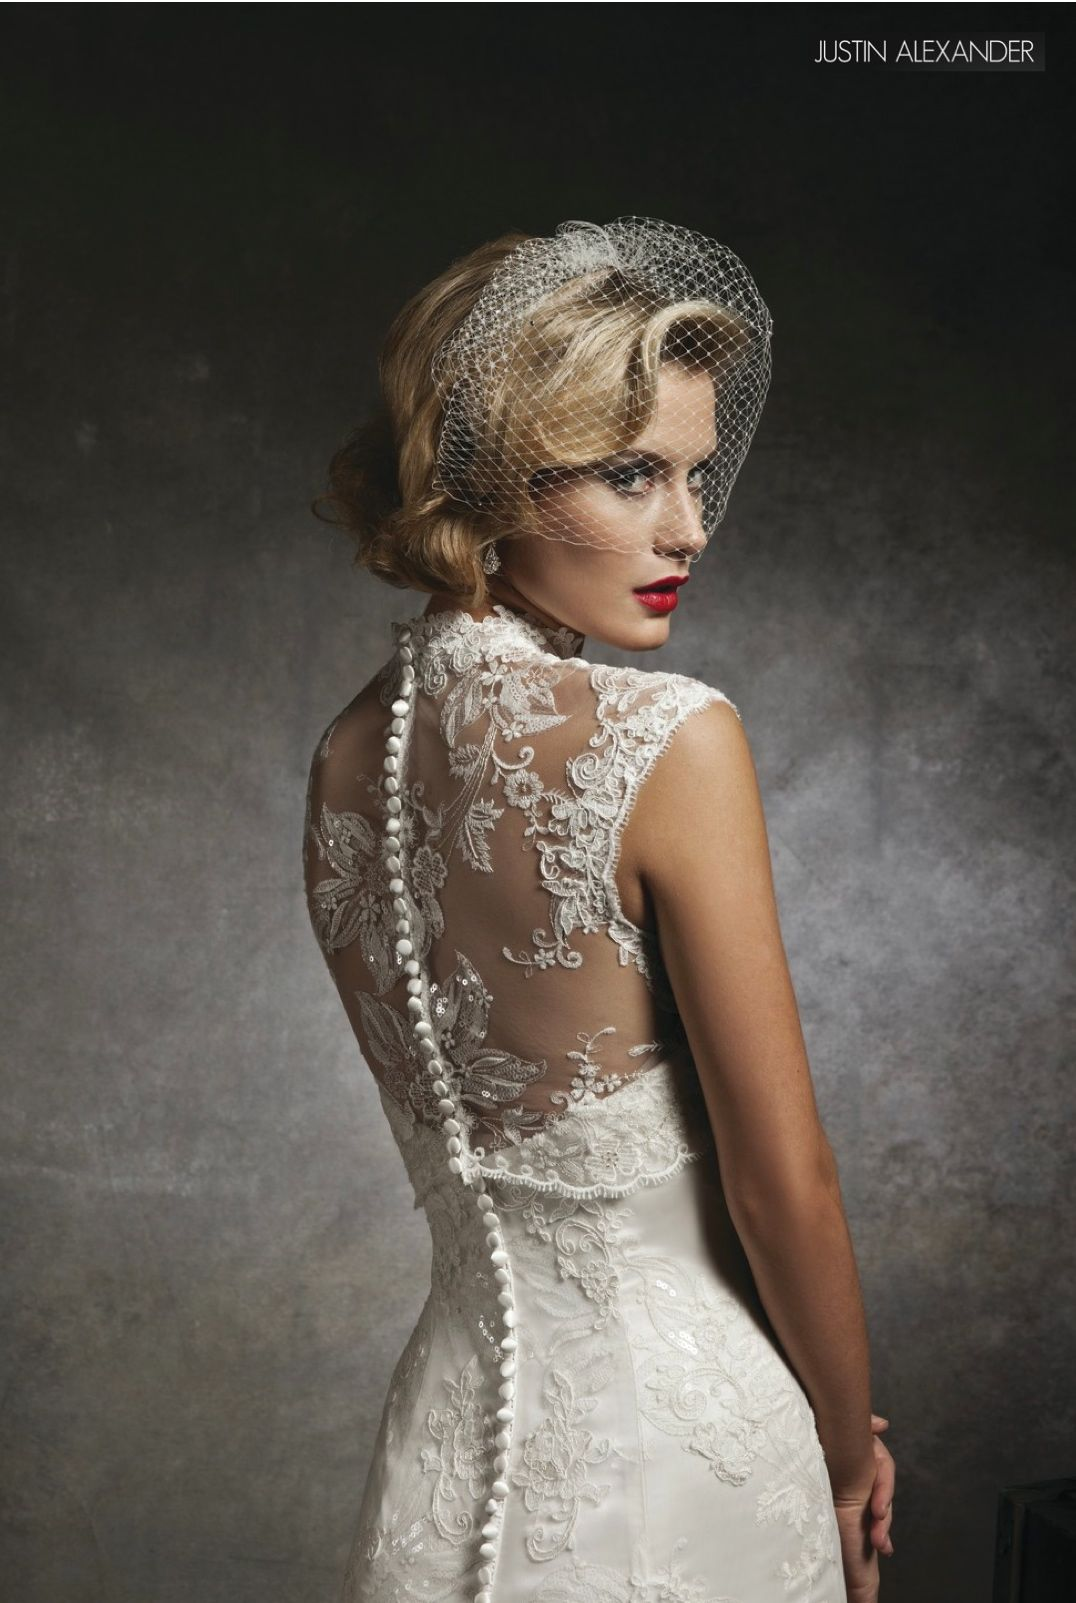 Vintage wedding dresses with sleeves  Pin by Marissa Savino on Vintage Feel  Pinterest  Wedding